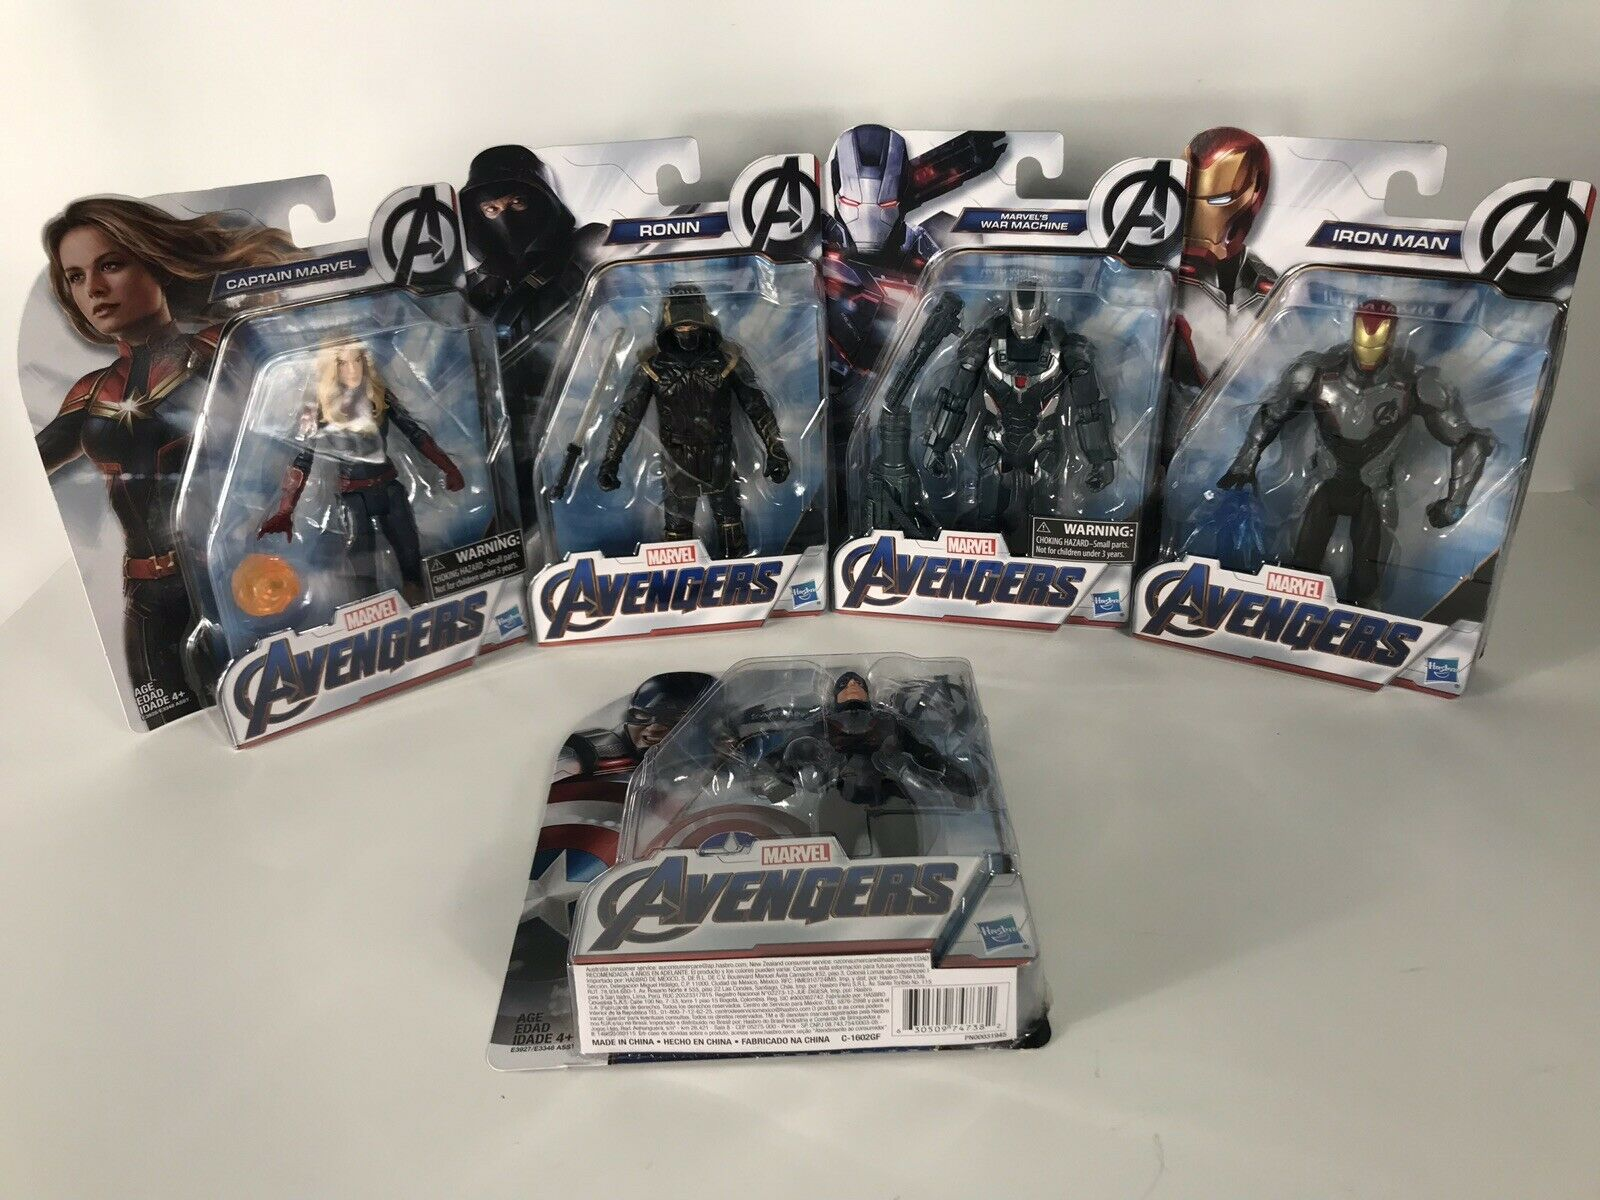 NIB förundras Avengers Endspel Lot of 5 Figures - New leksaker, in Hand - Unöppna